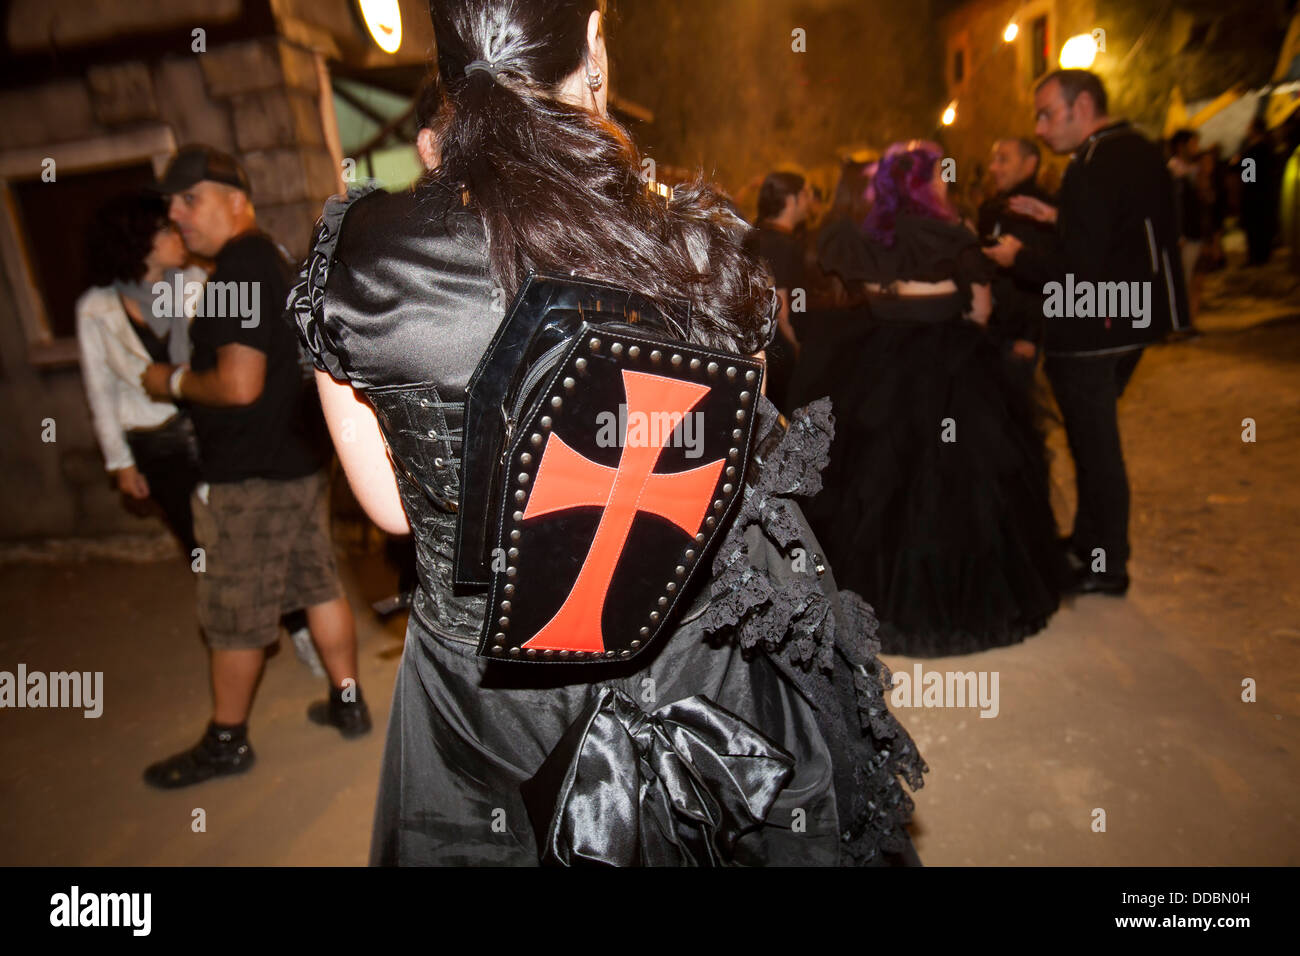 Girl with backpack coffin at Entremuralhas 2013, a gothic festival dedicated to the goth subculture in Leiria, Portugal. - Stock Image